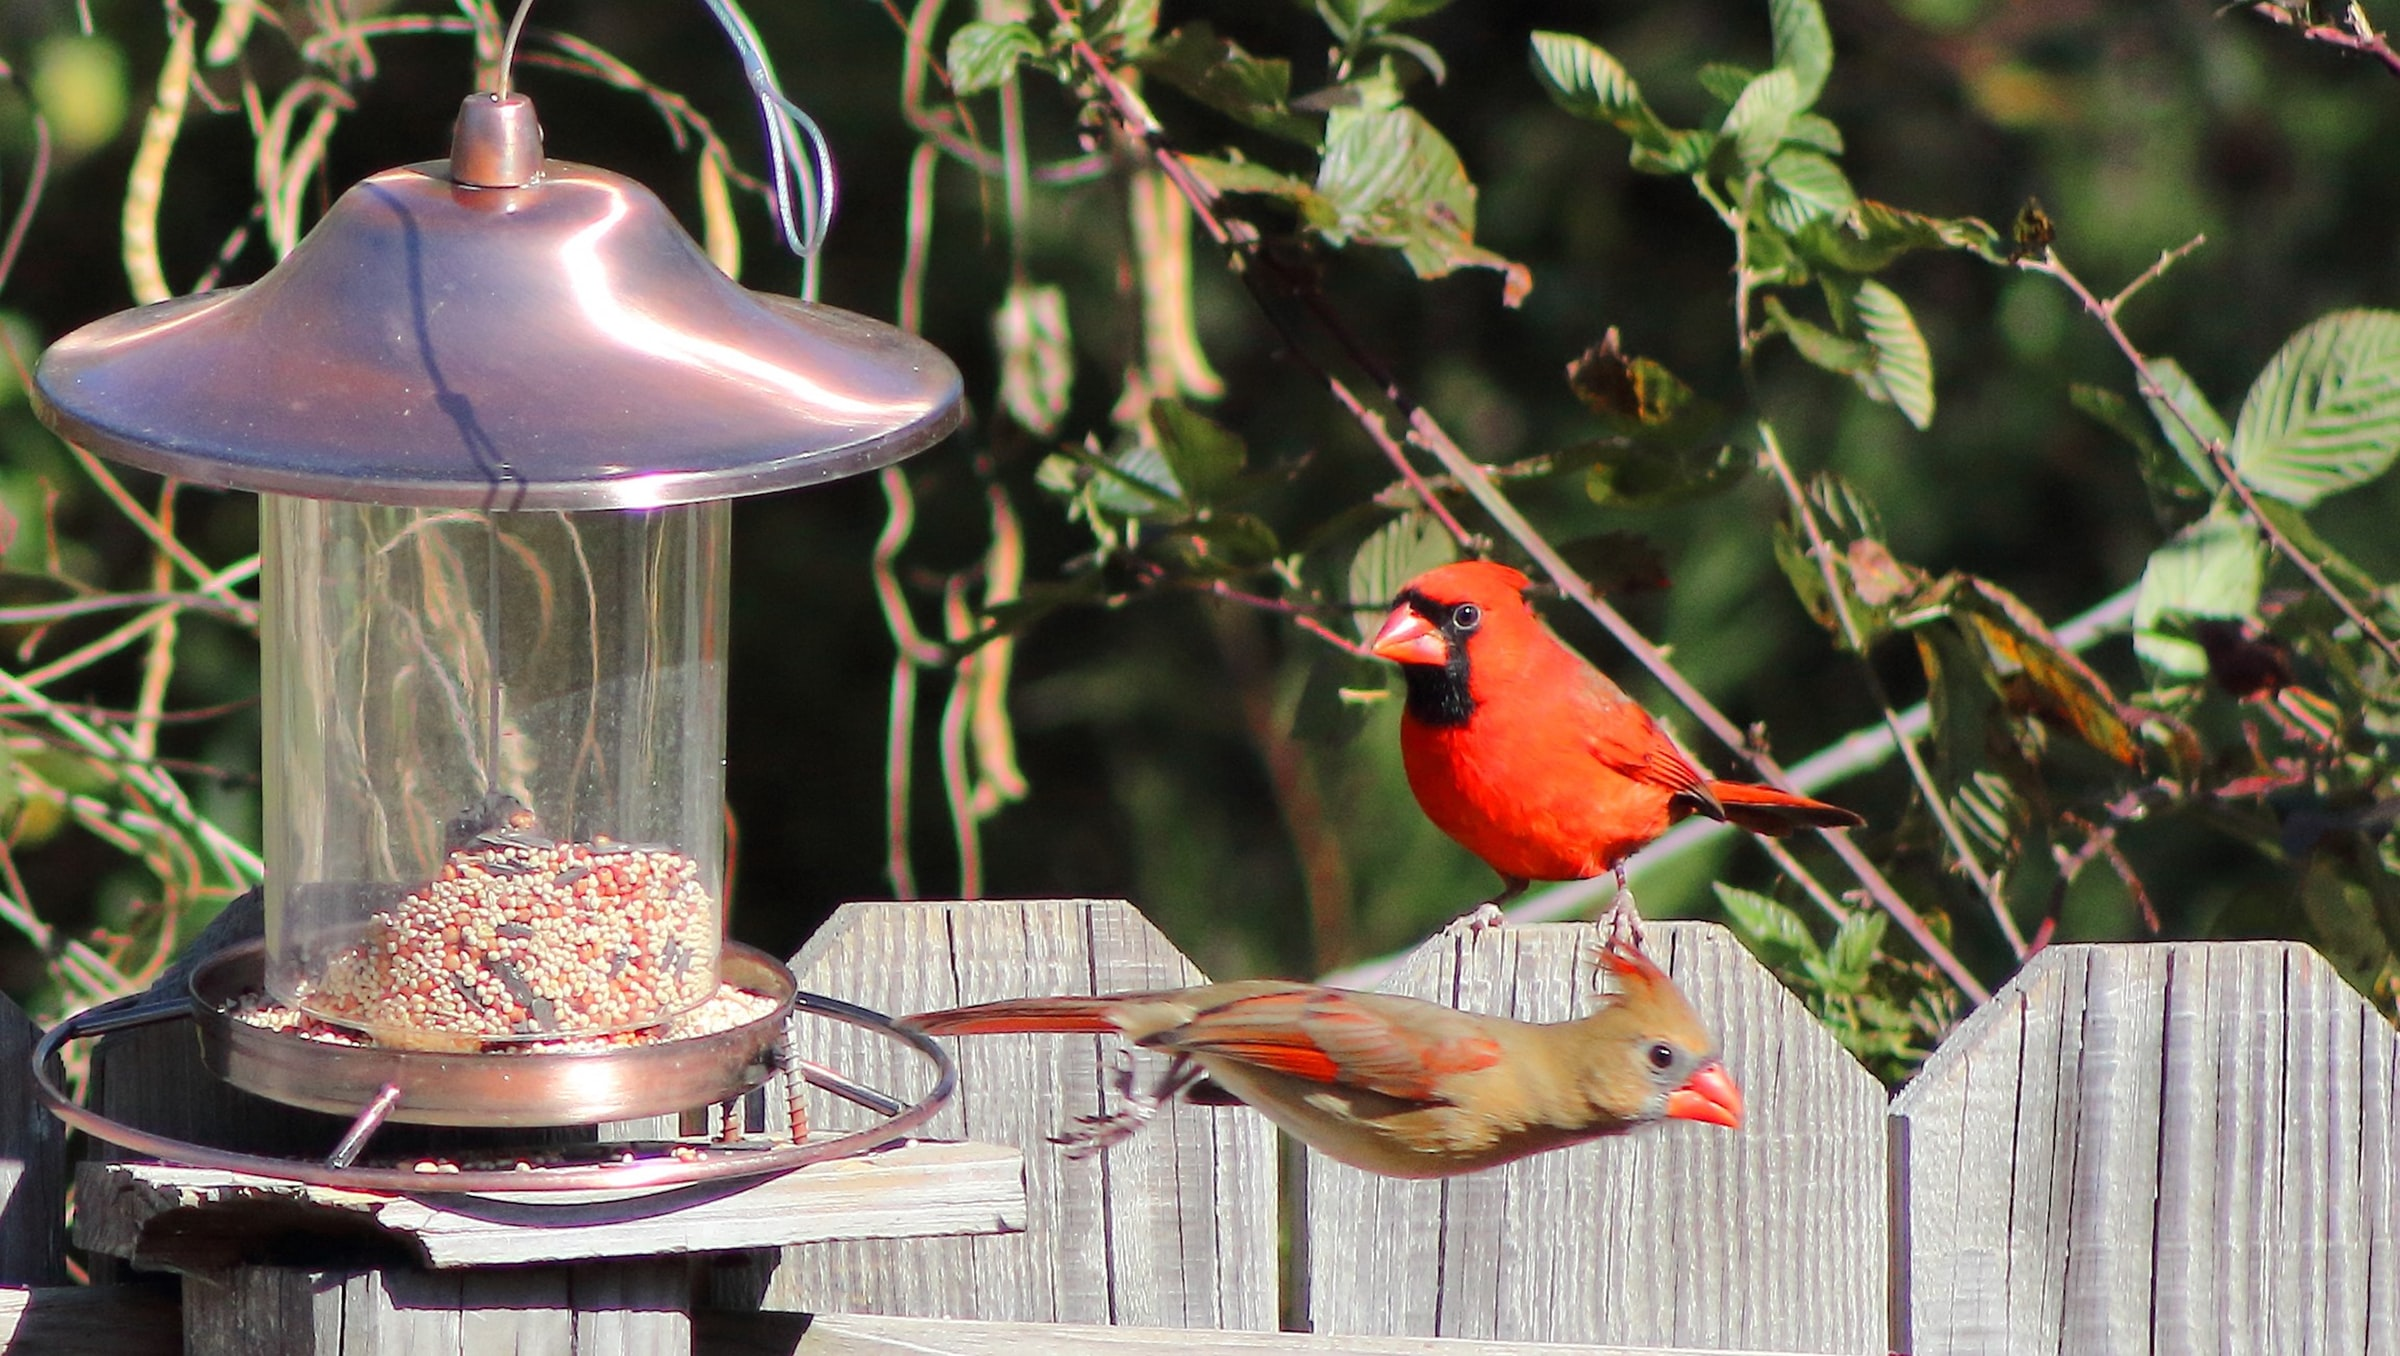 A bright read male cardinal and a pink female cardinal at a birdfeeder